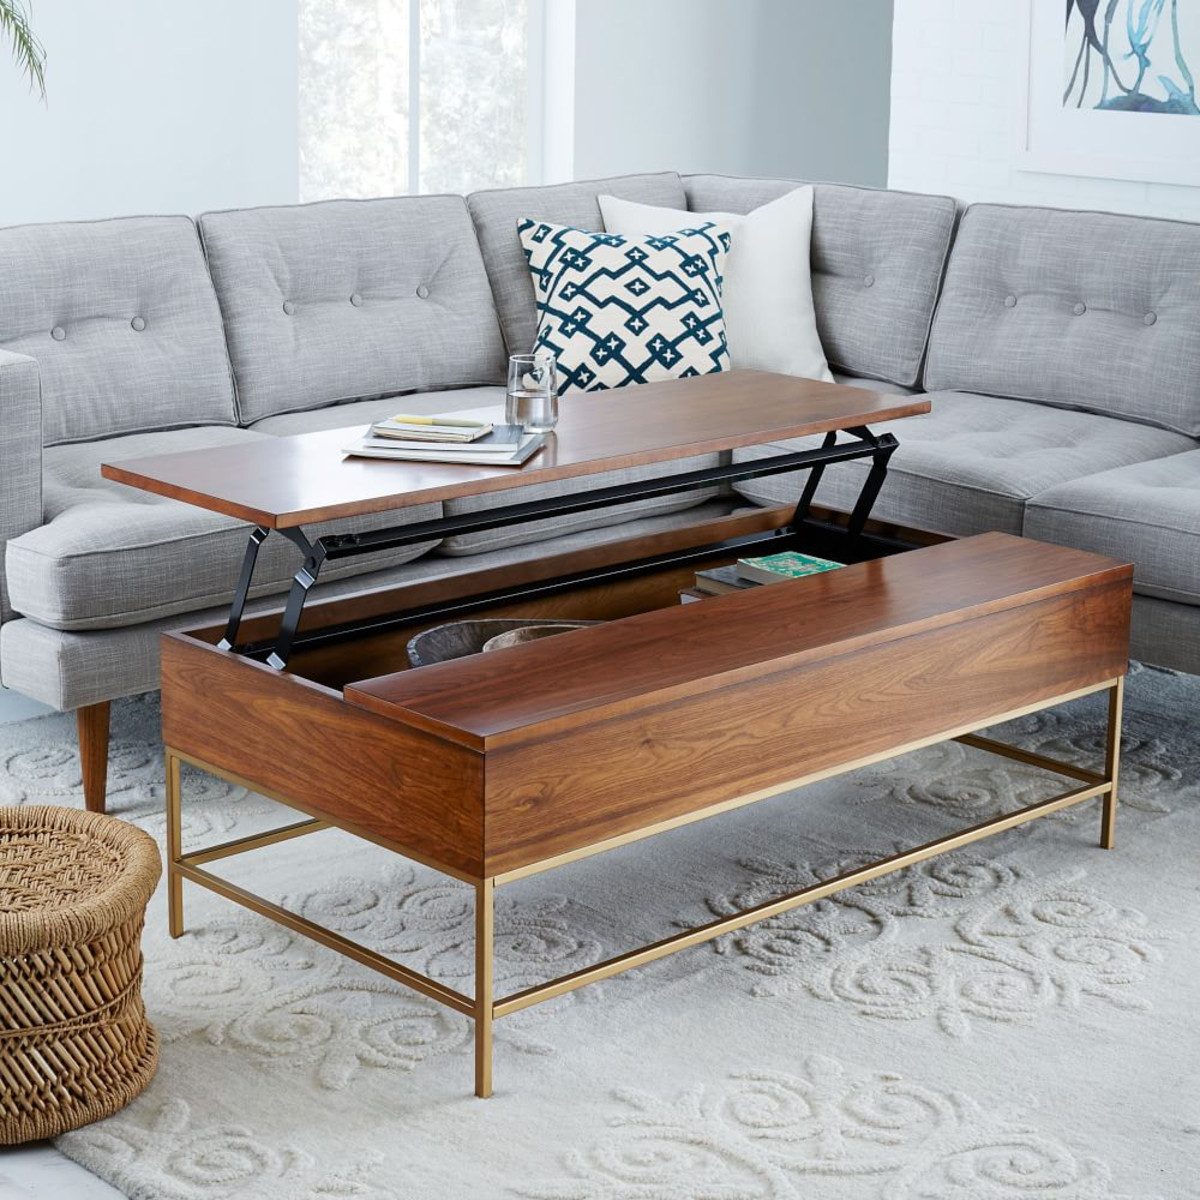 Espresso Coffee Table With Storage: 8 Best Coffee Tables For Small Spaces